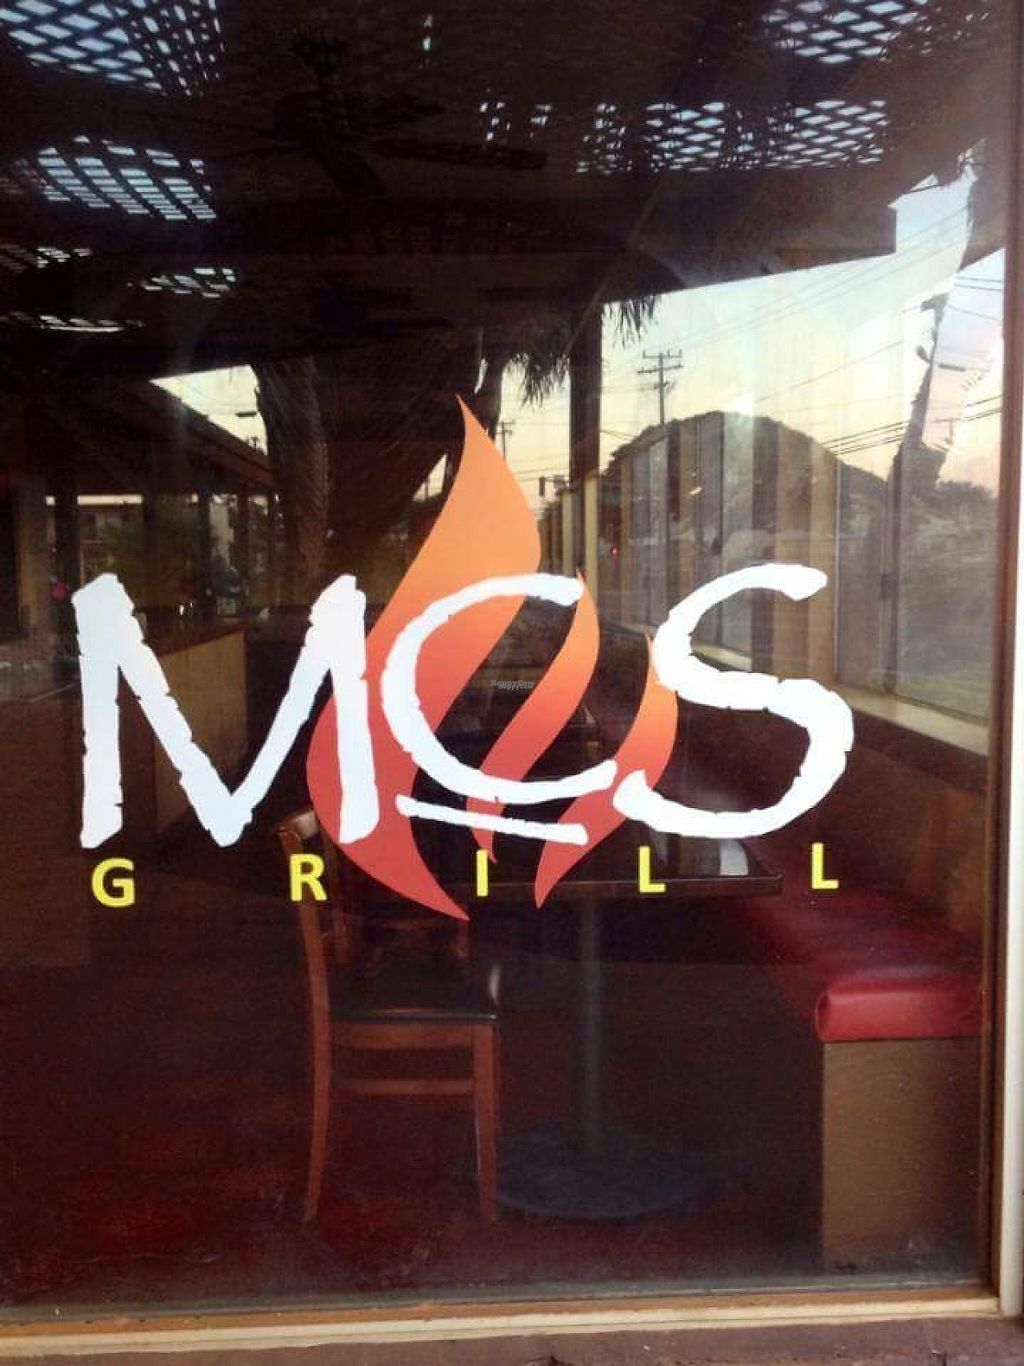 """Photo of MCS Grill  by <a href=""""/members/profile/Ctillett83"""">Ctillett83</a> <br/>Front of restaurant <br/> February 23, 2017  - <a href='/contact/abuse/image/85980/229543'>Report</a>"""